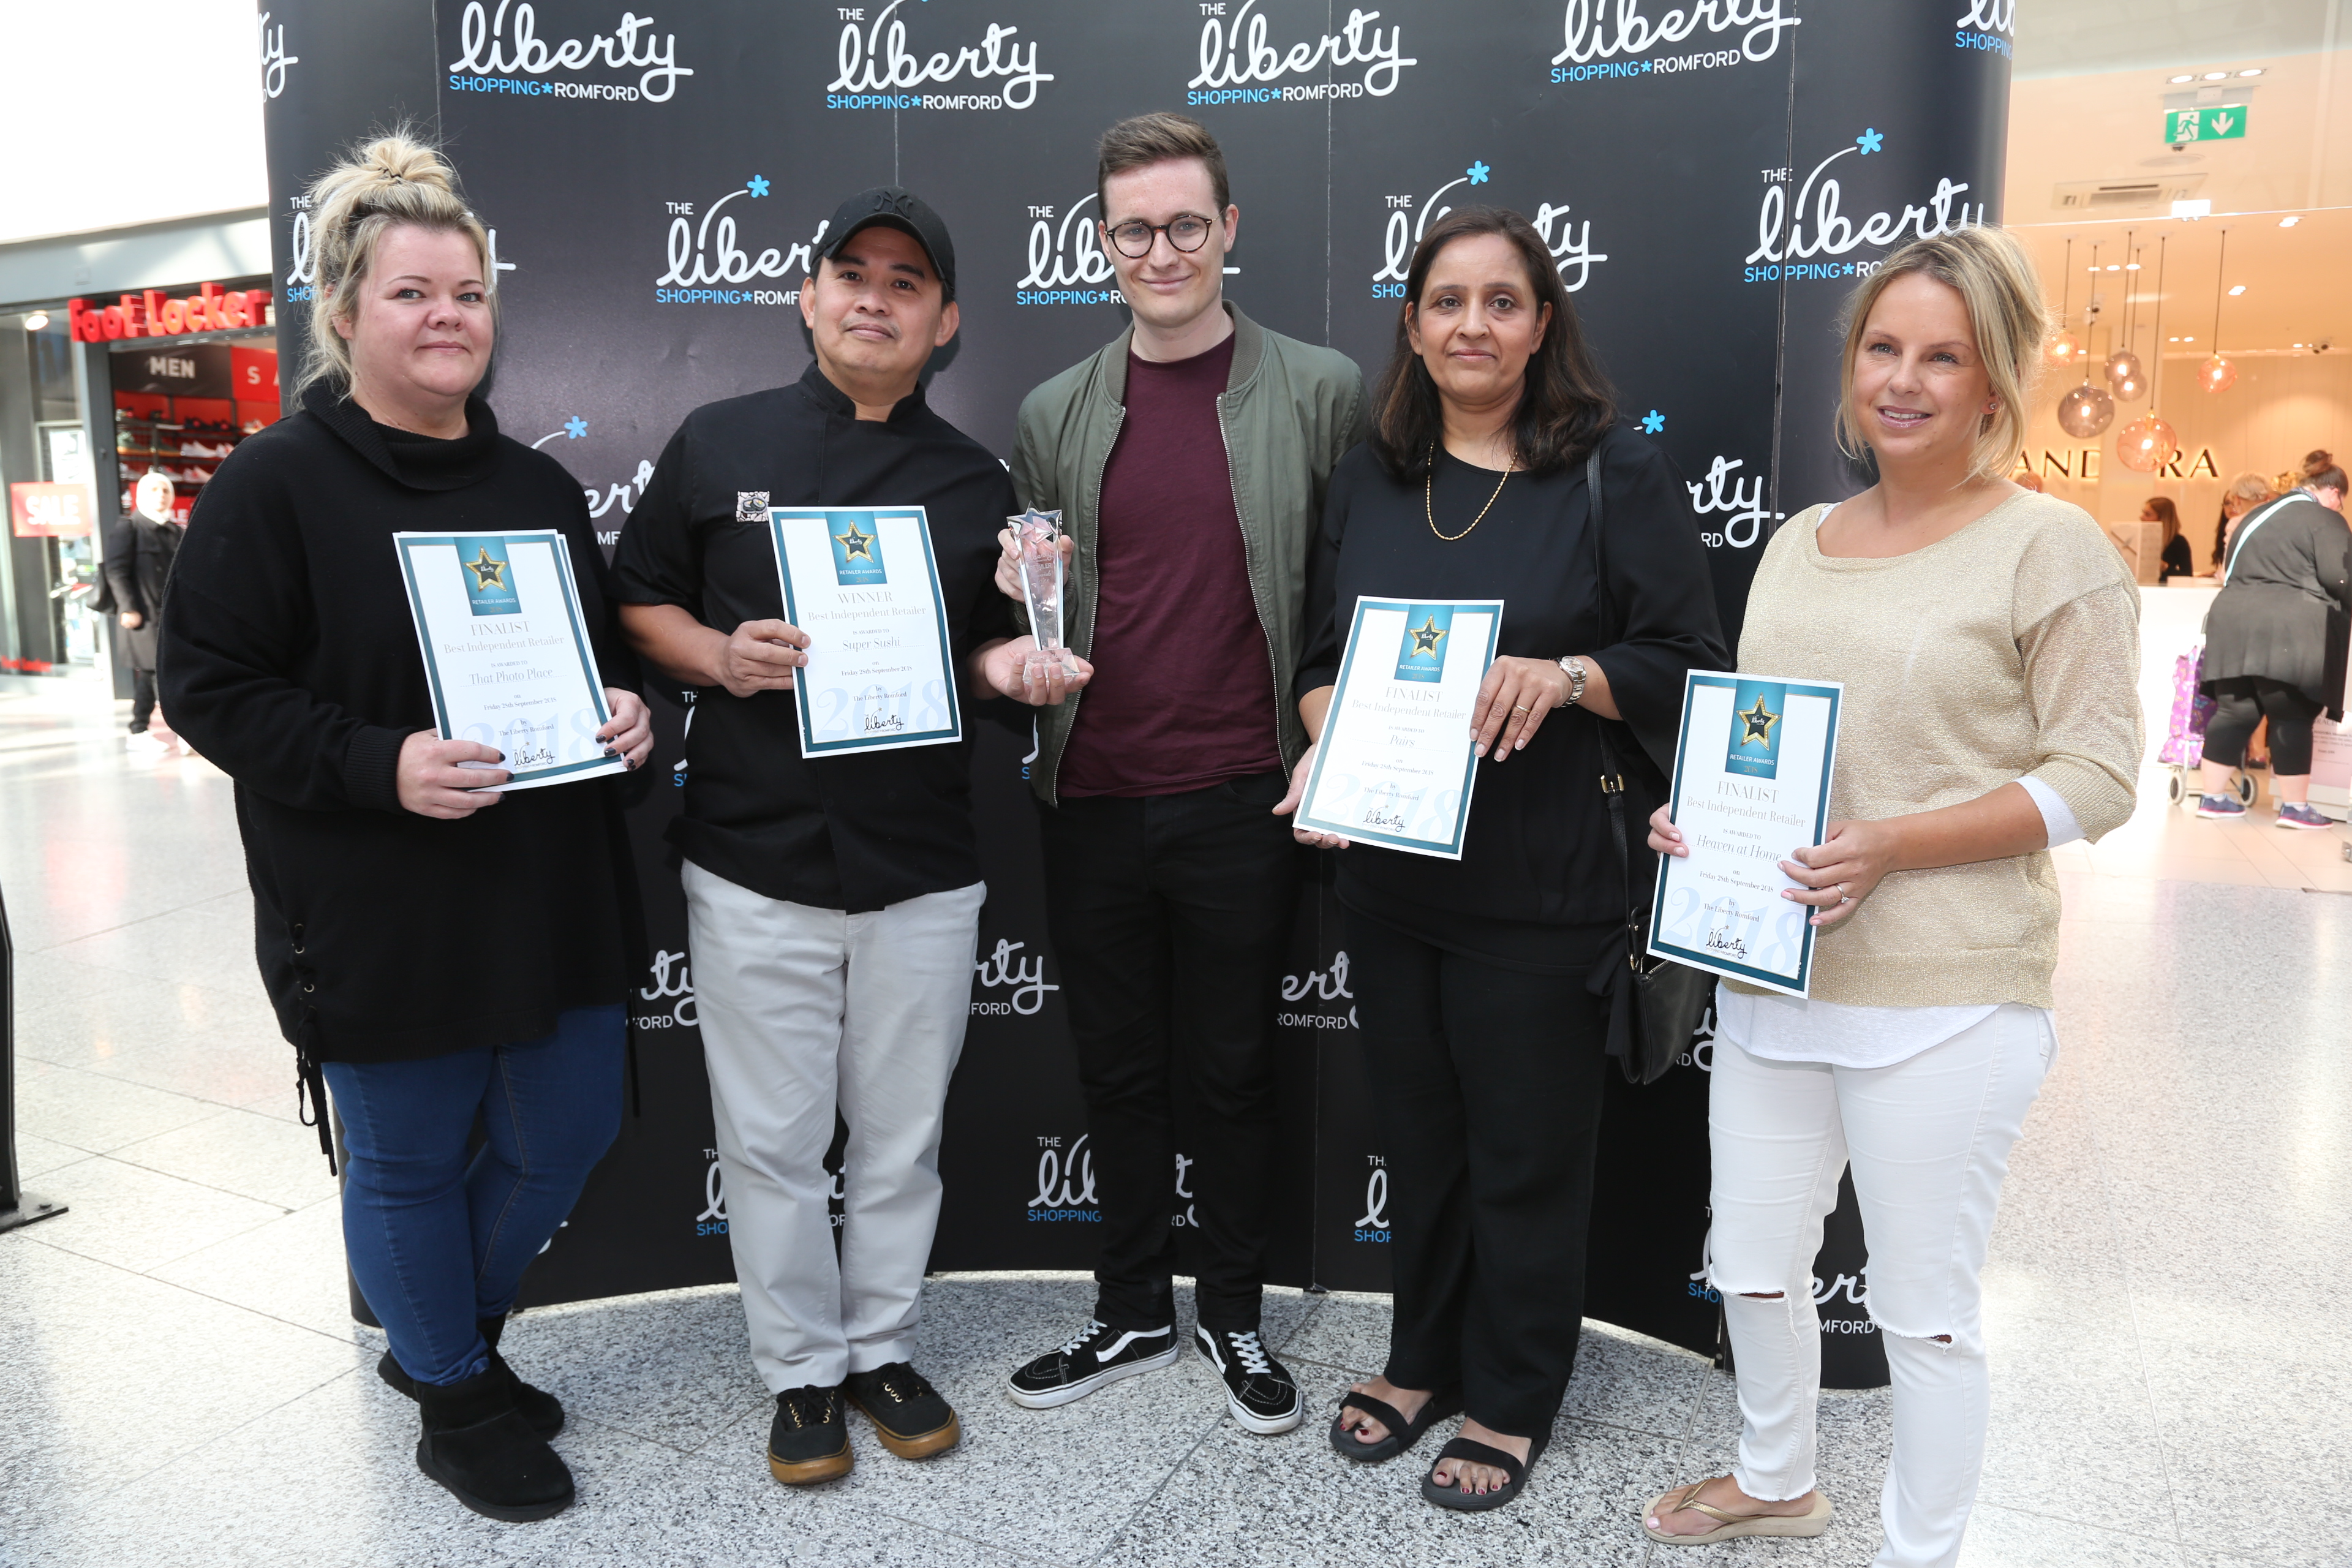 Image: S.Rowse. Independent Retailer, Kelly Smith on behalf of Finalist Kerrie O'Neil from That Photo Place, Winner Gonzalez from Super Sushi, with Haydn Jeavon from Time 107.5 fm radio, Kin Rana from Pairs, Lisa Bignall from Heaven at Home